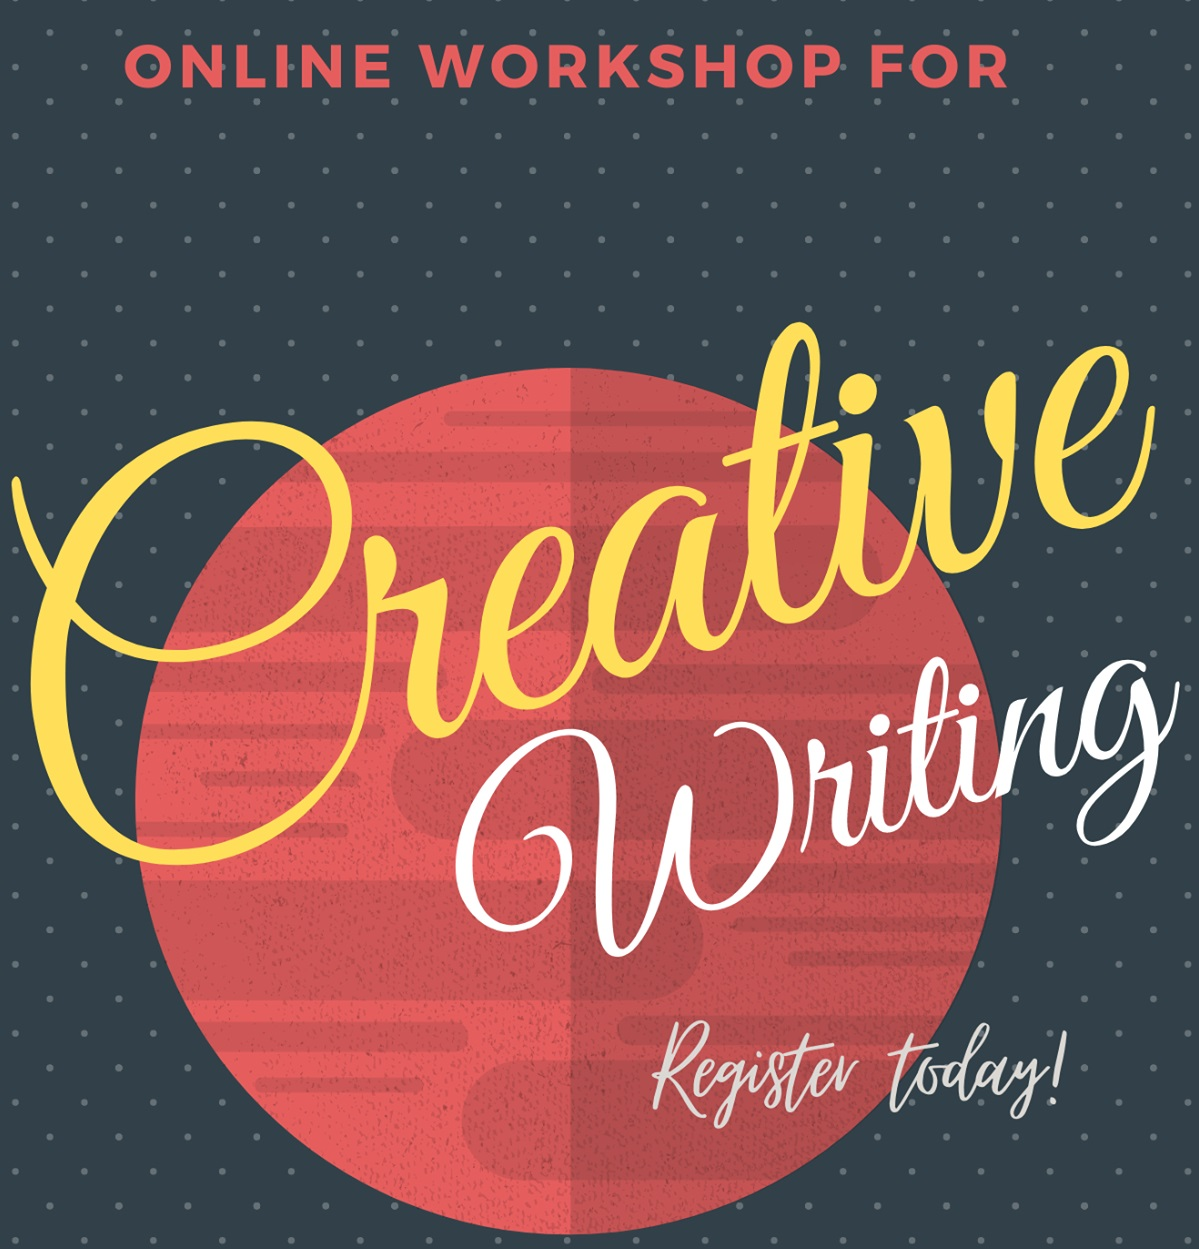 Online Workshop for Creative Writing